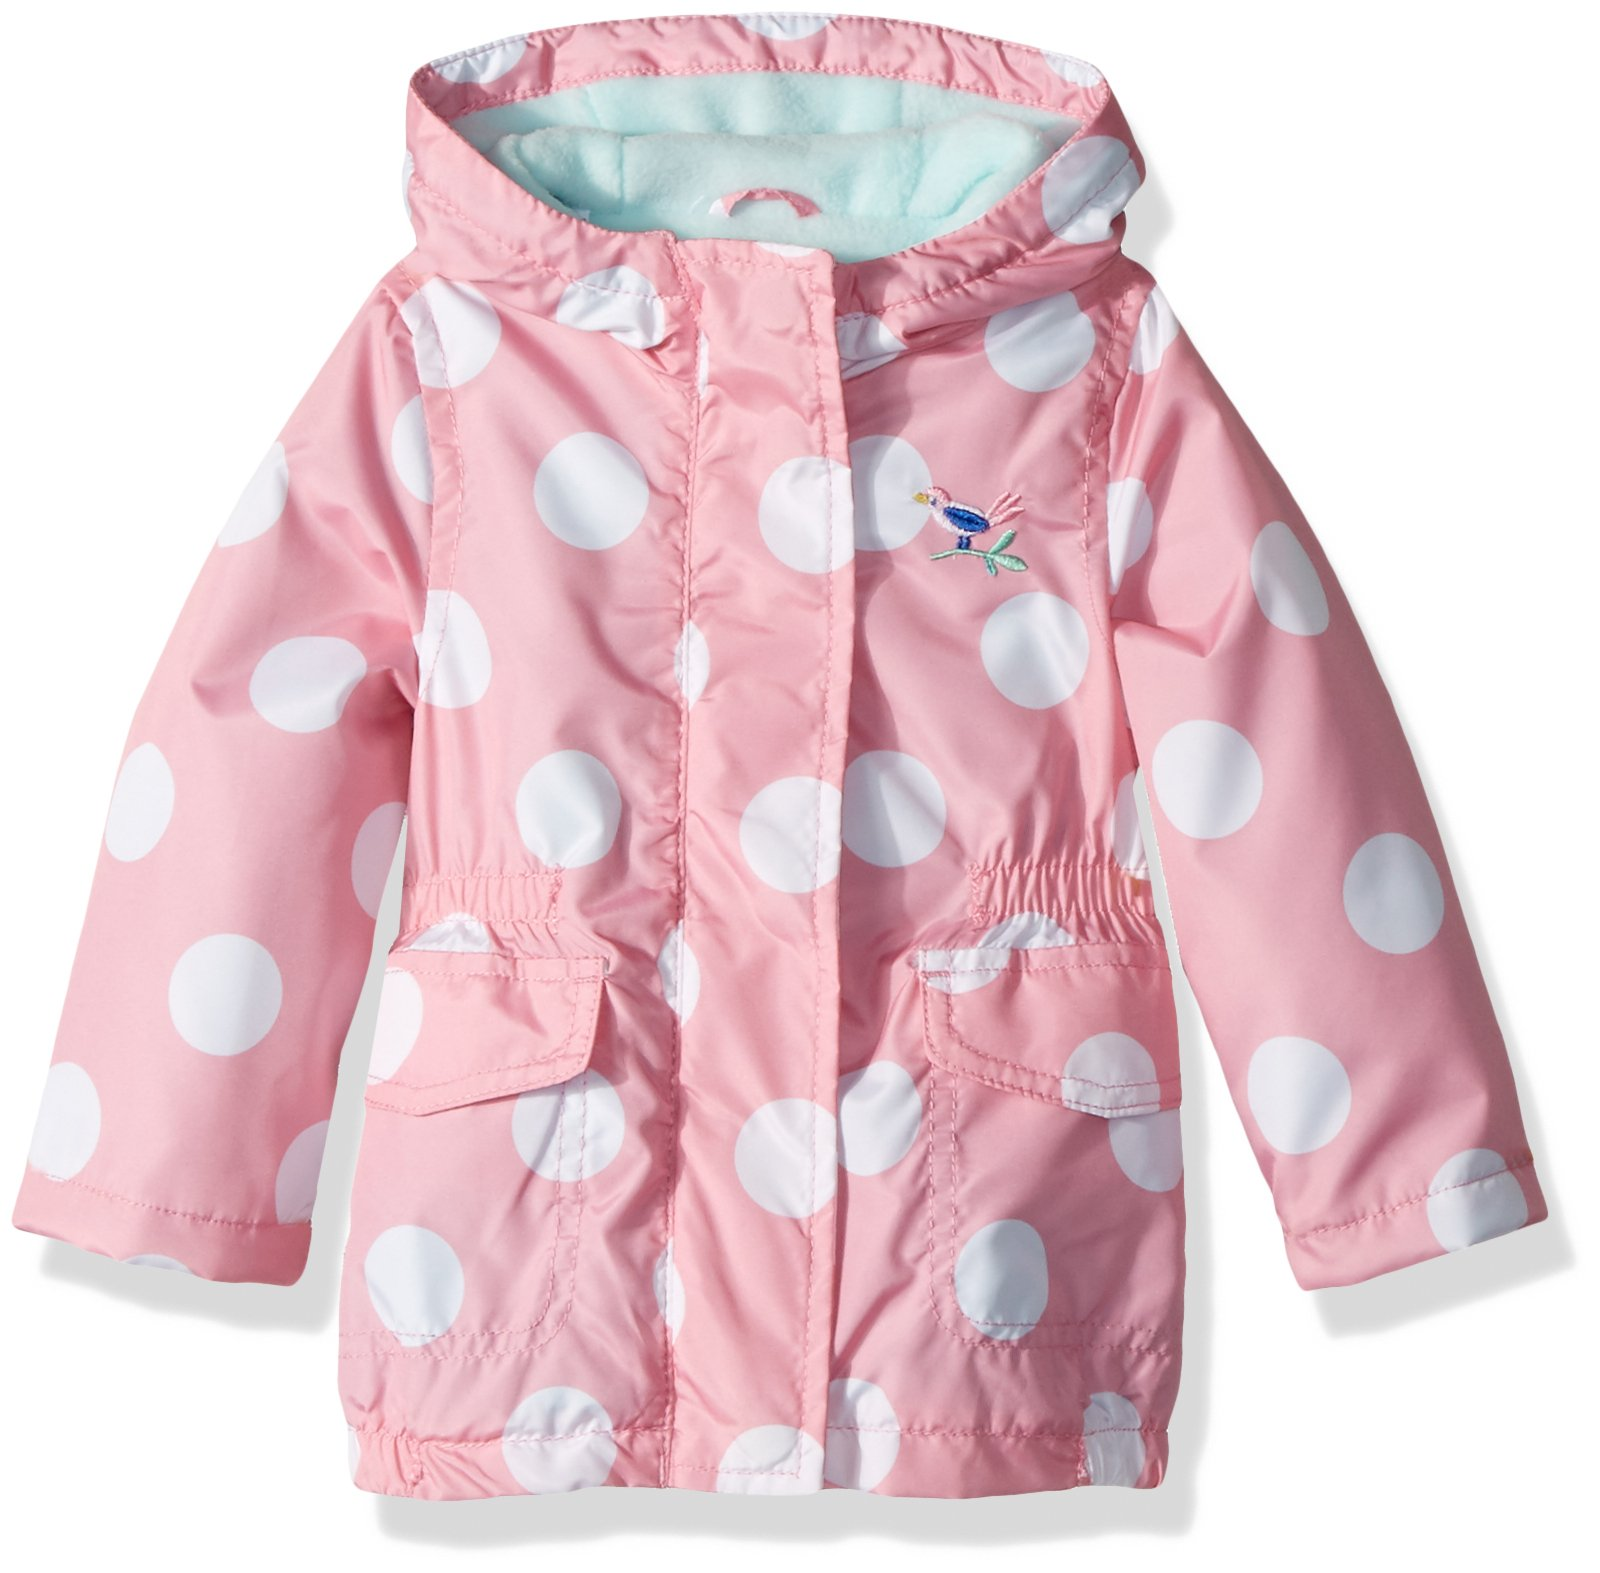 Carter's Baby Girls Fleece Lined Anorak Jacket, Pink Dot, 18M by Carter's